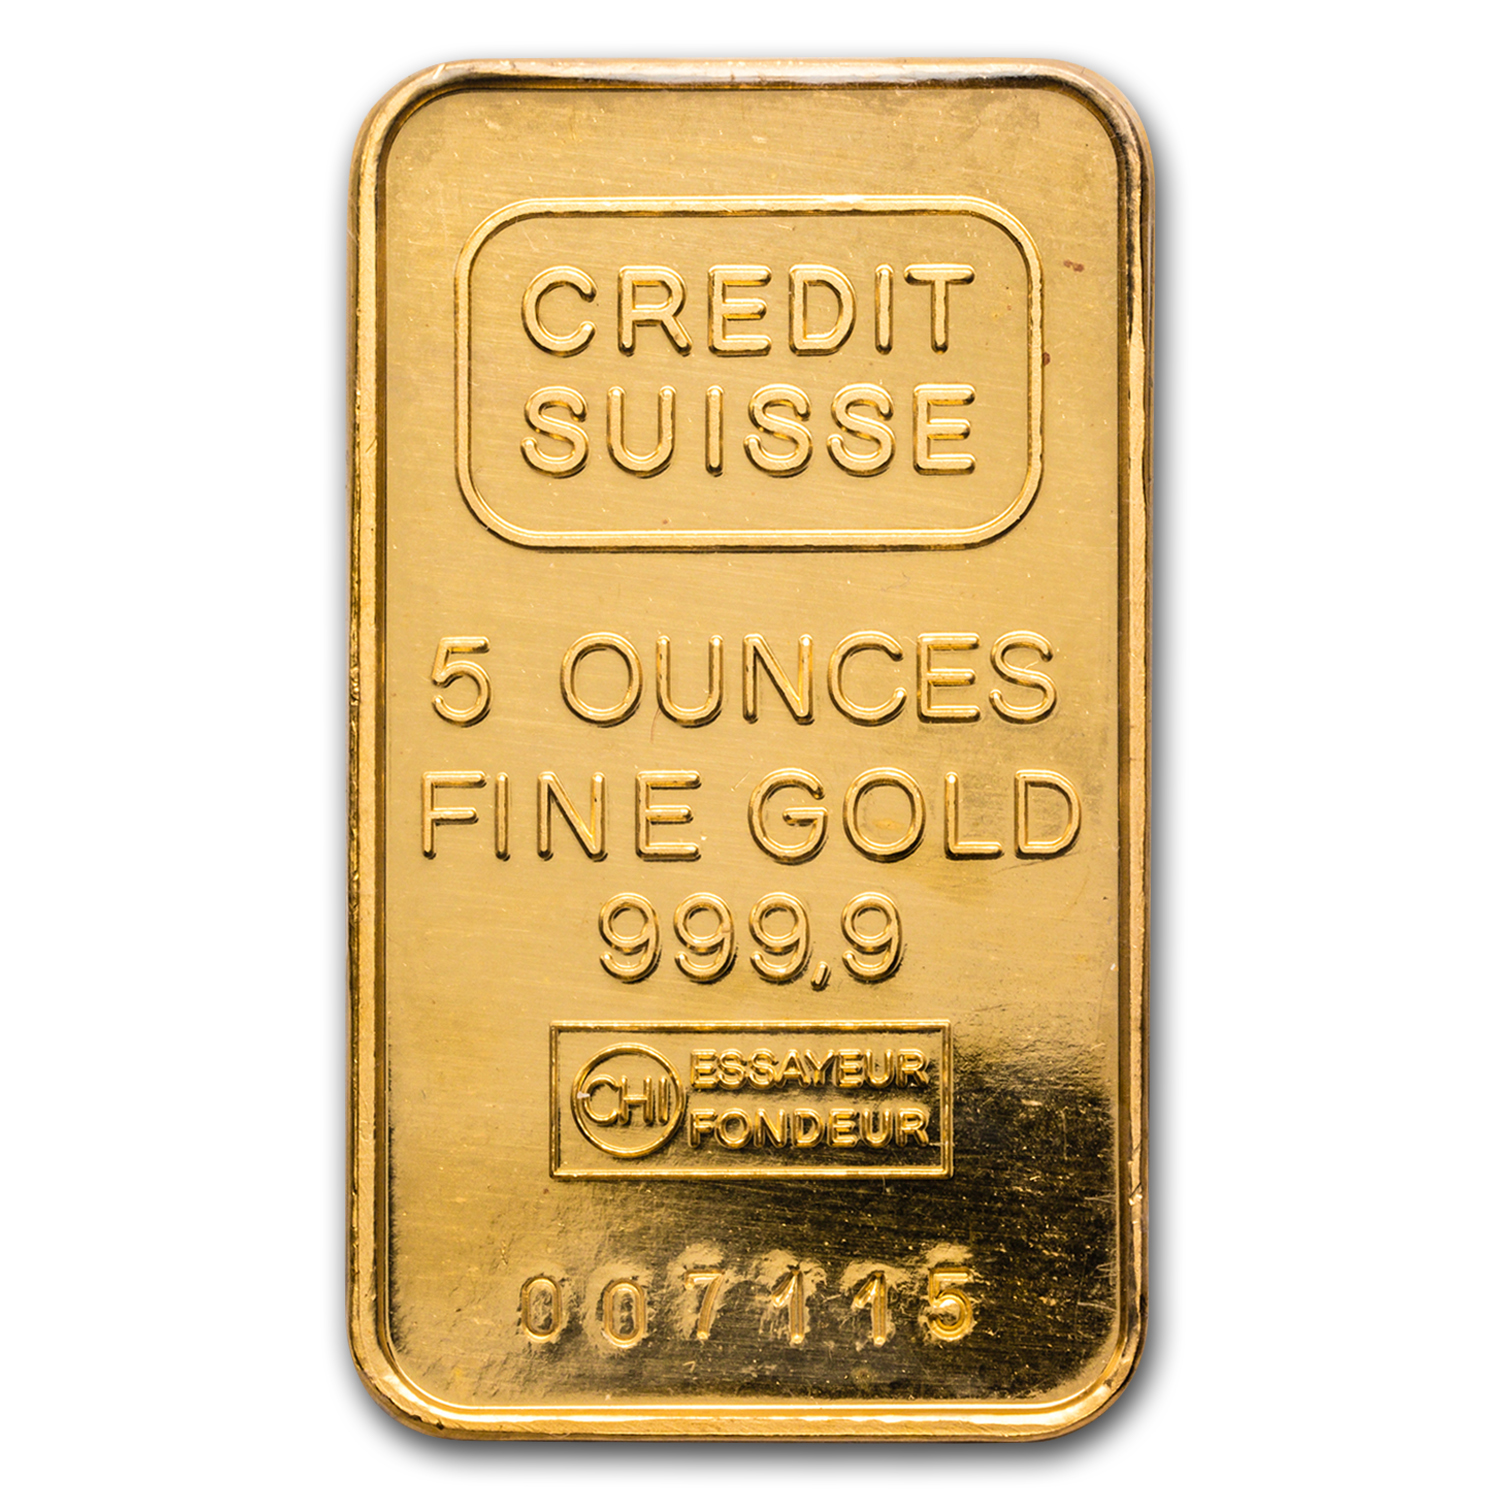 5 oz Gold Bar - Credit Suisse